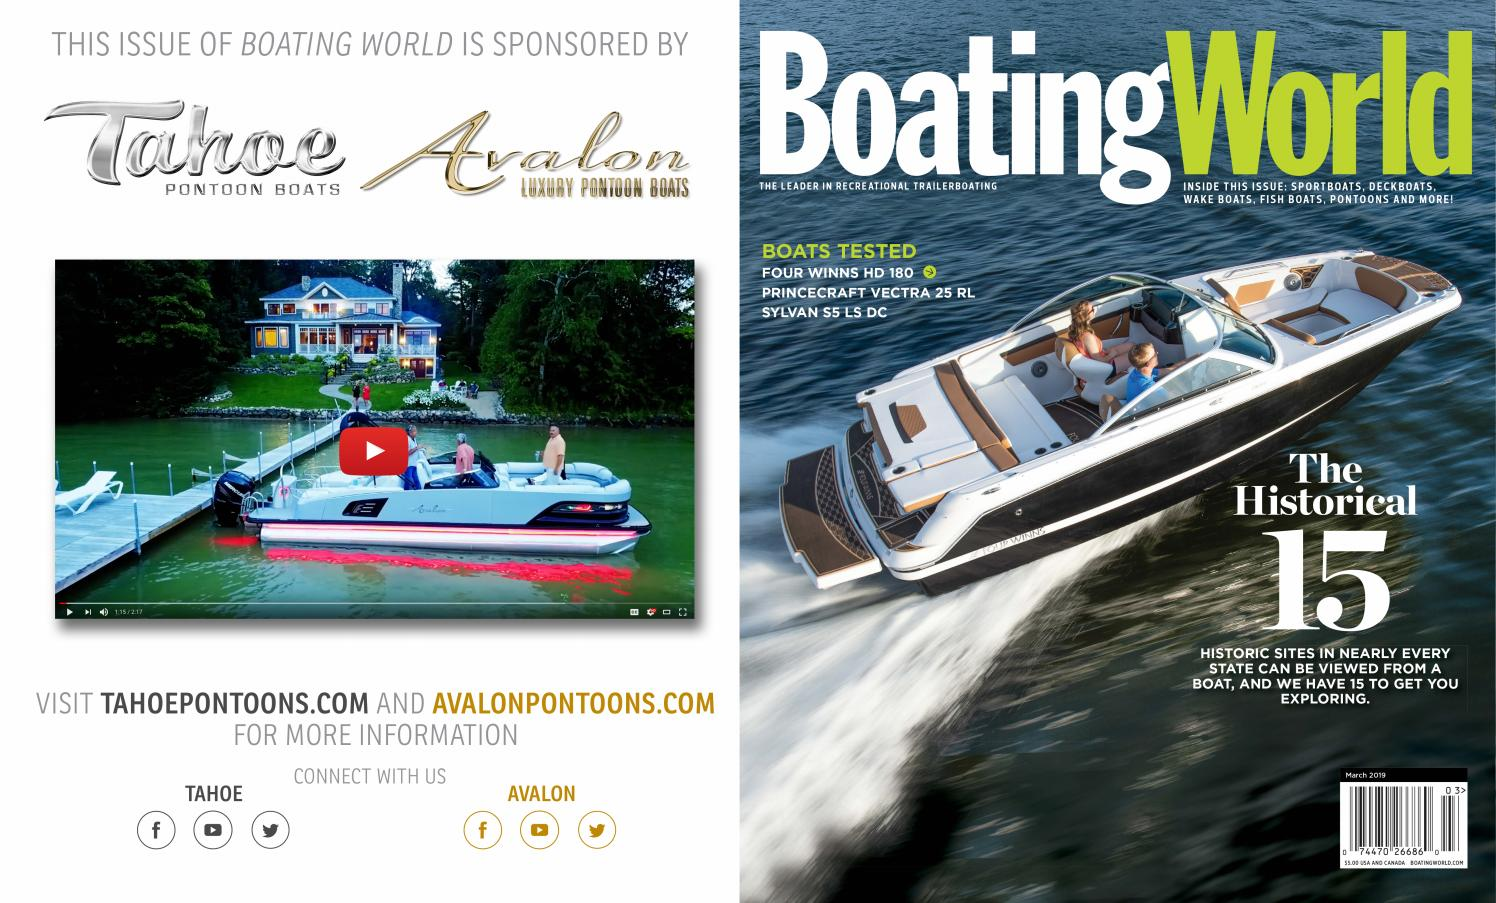 March 2019 - Boating World Magazine by Duncan McIntosh